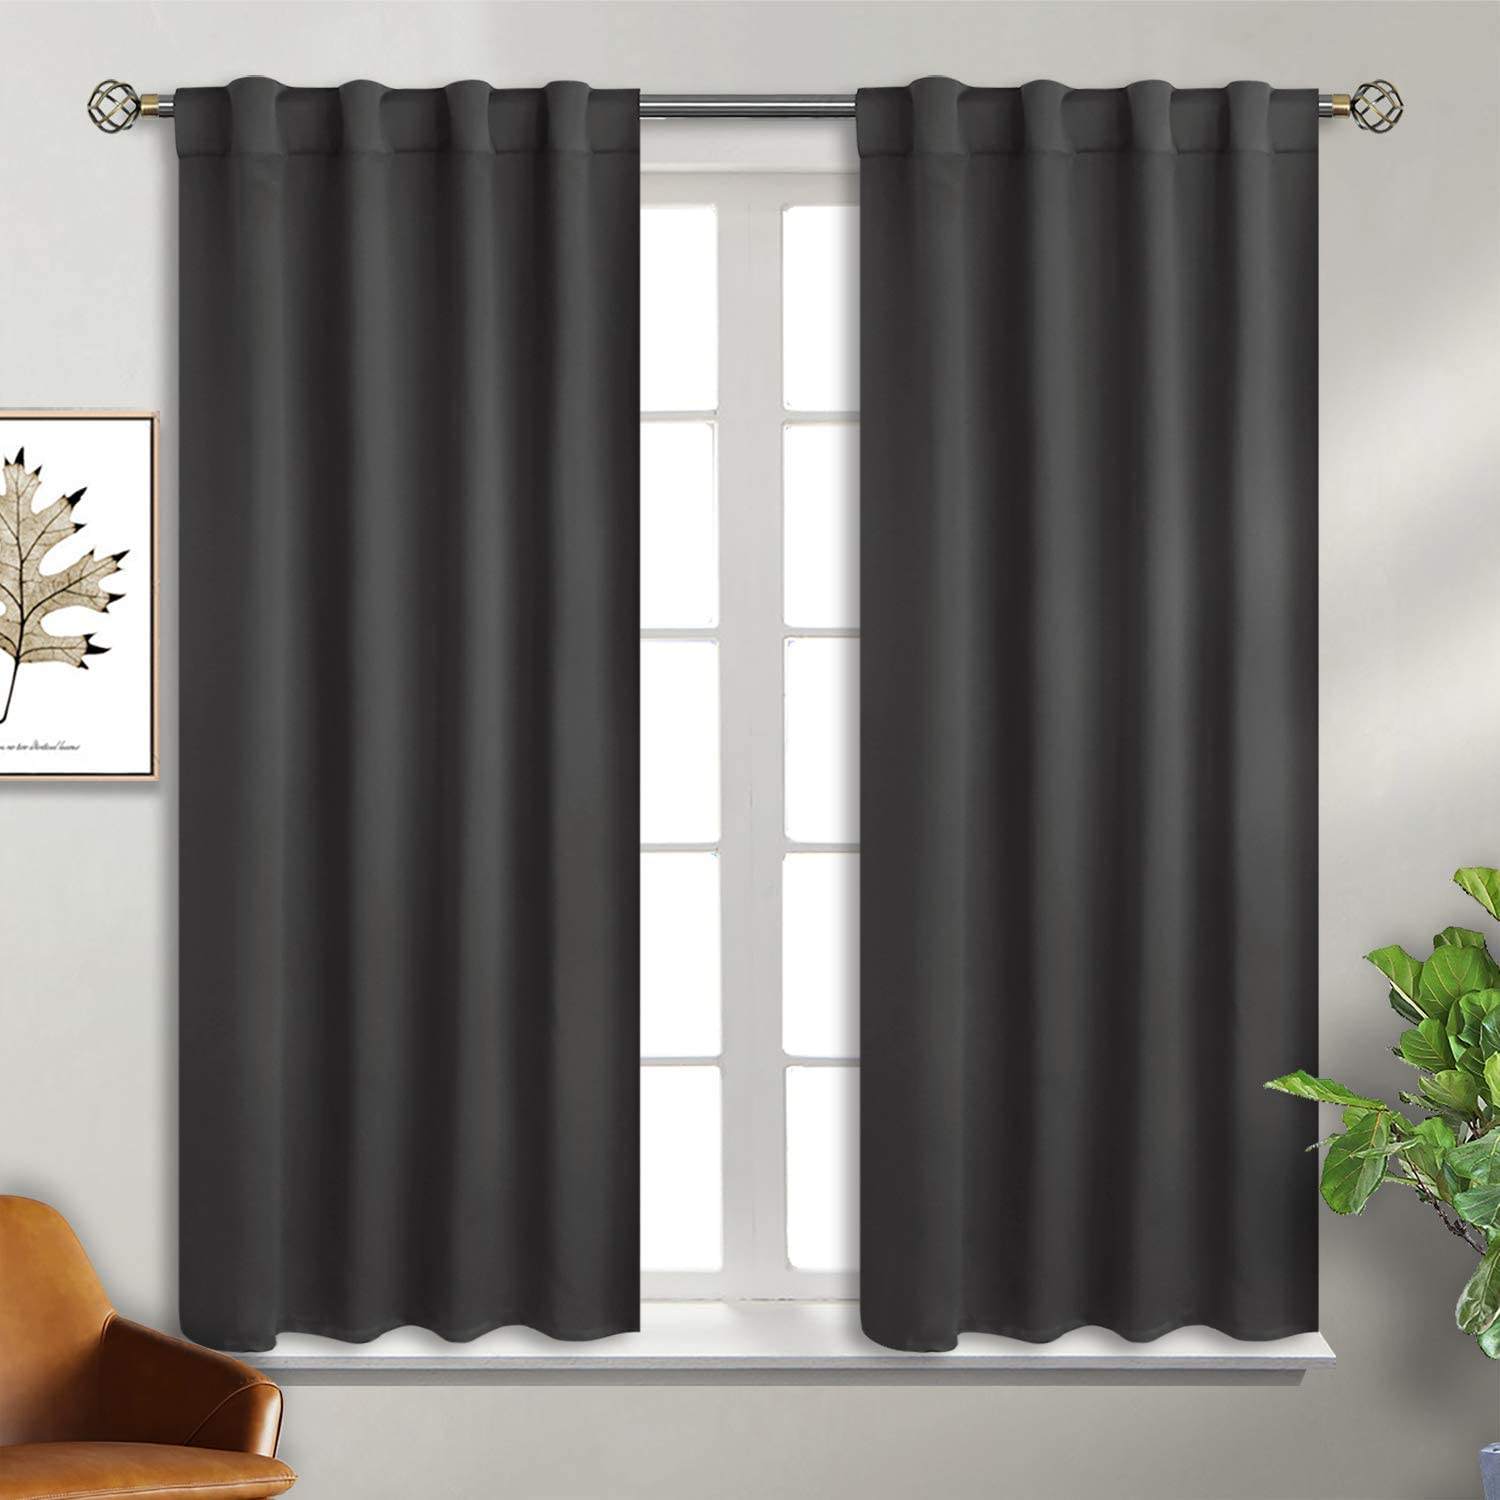 BGment Rod Pocket and Back Tab Blackout Curtains for Bedroom - Thermal Insulated Room Darkening Curtains for Living Room, 2 Window Curtain Panels (38 x 45 Inch, Dark Grey)